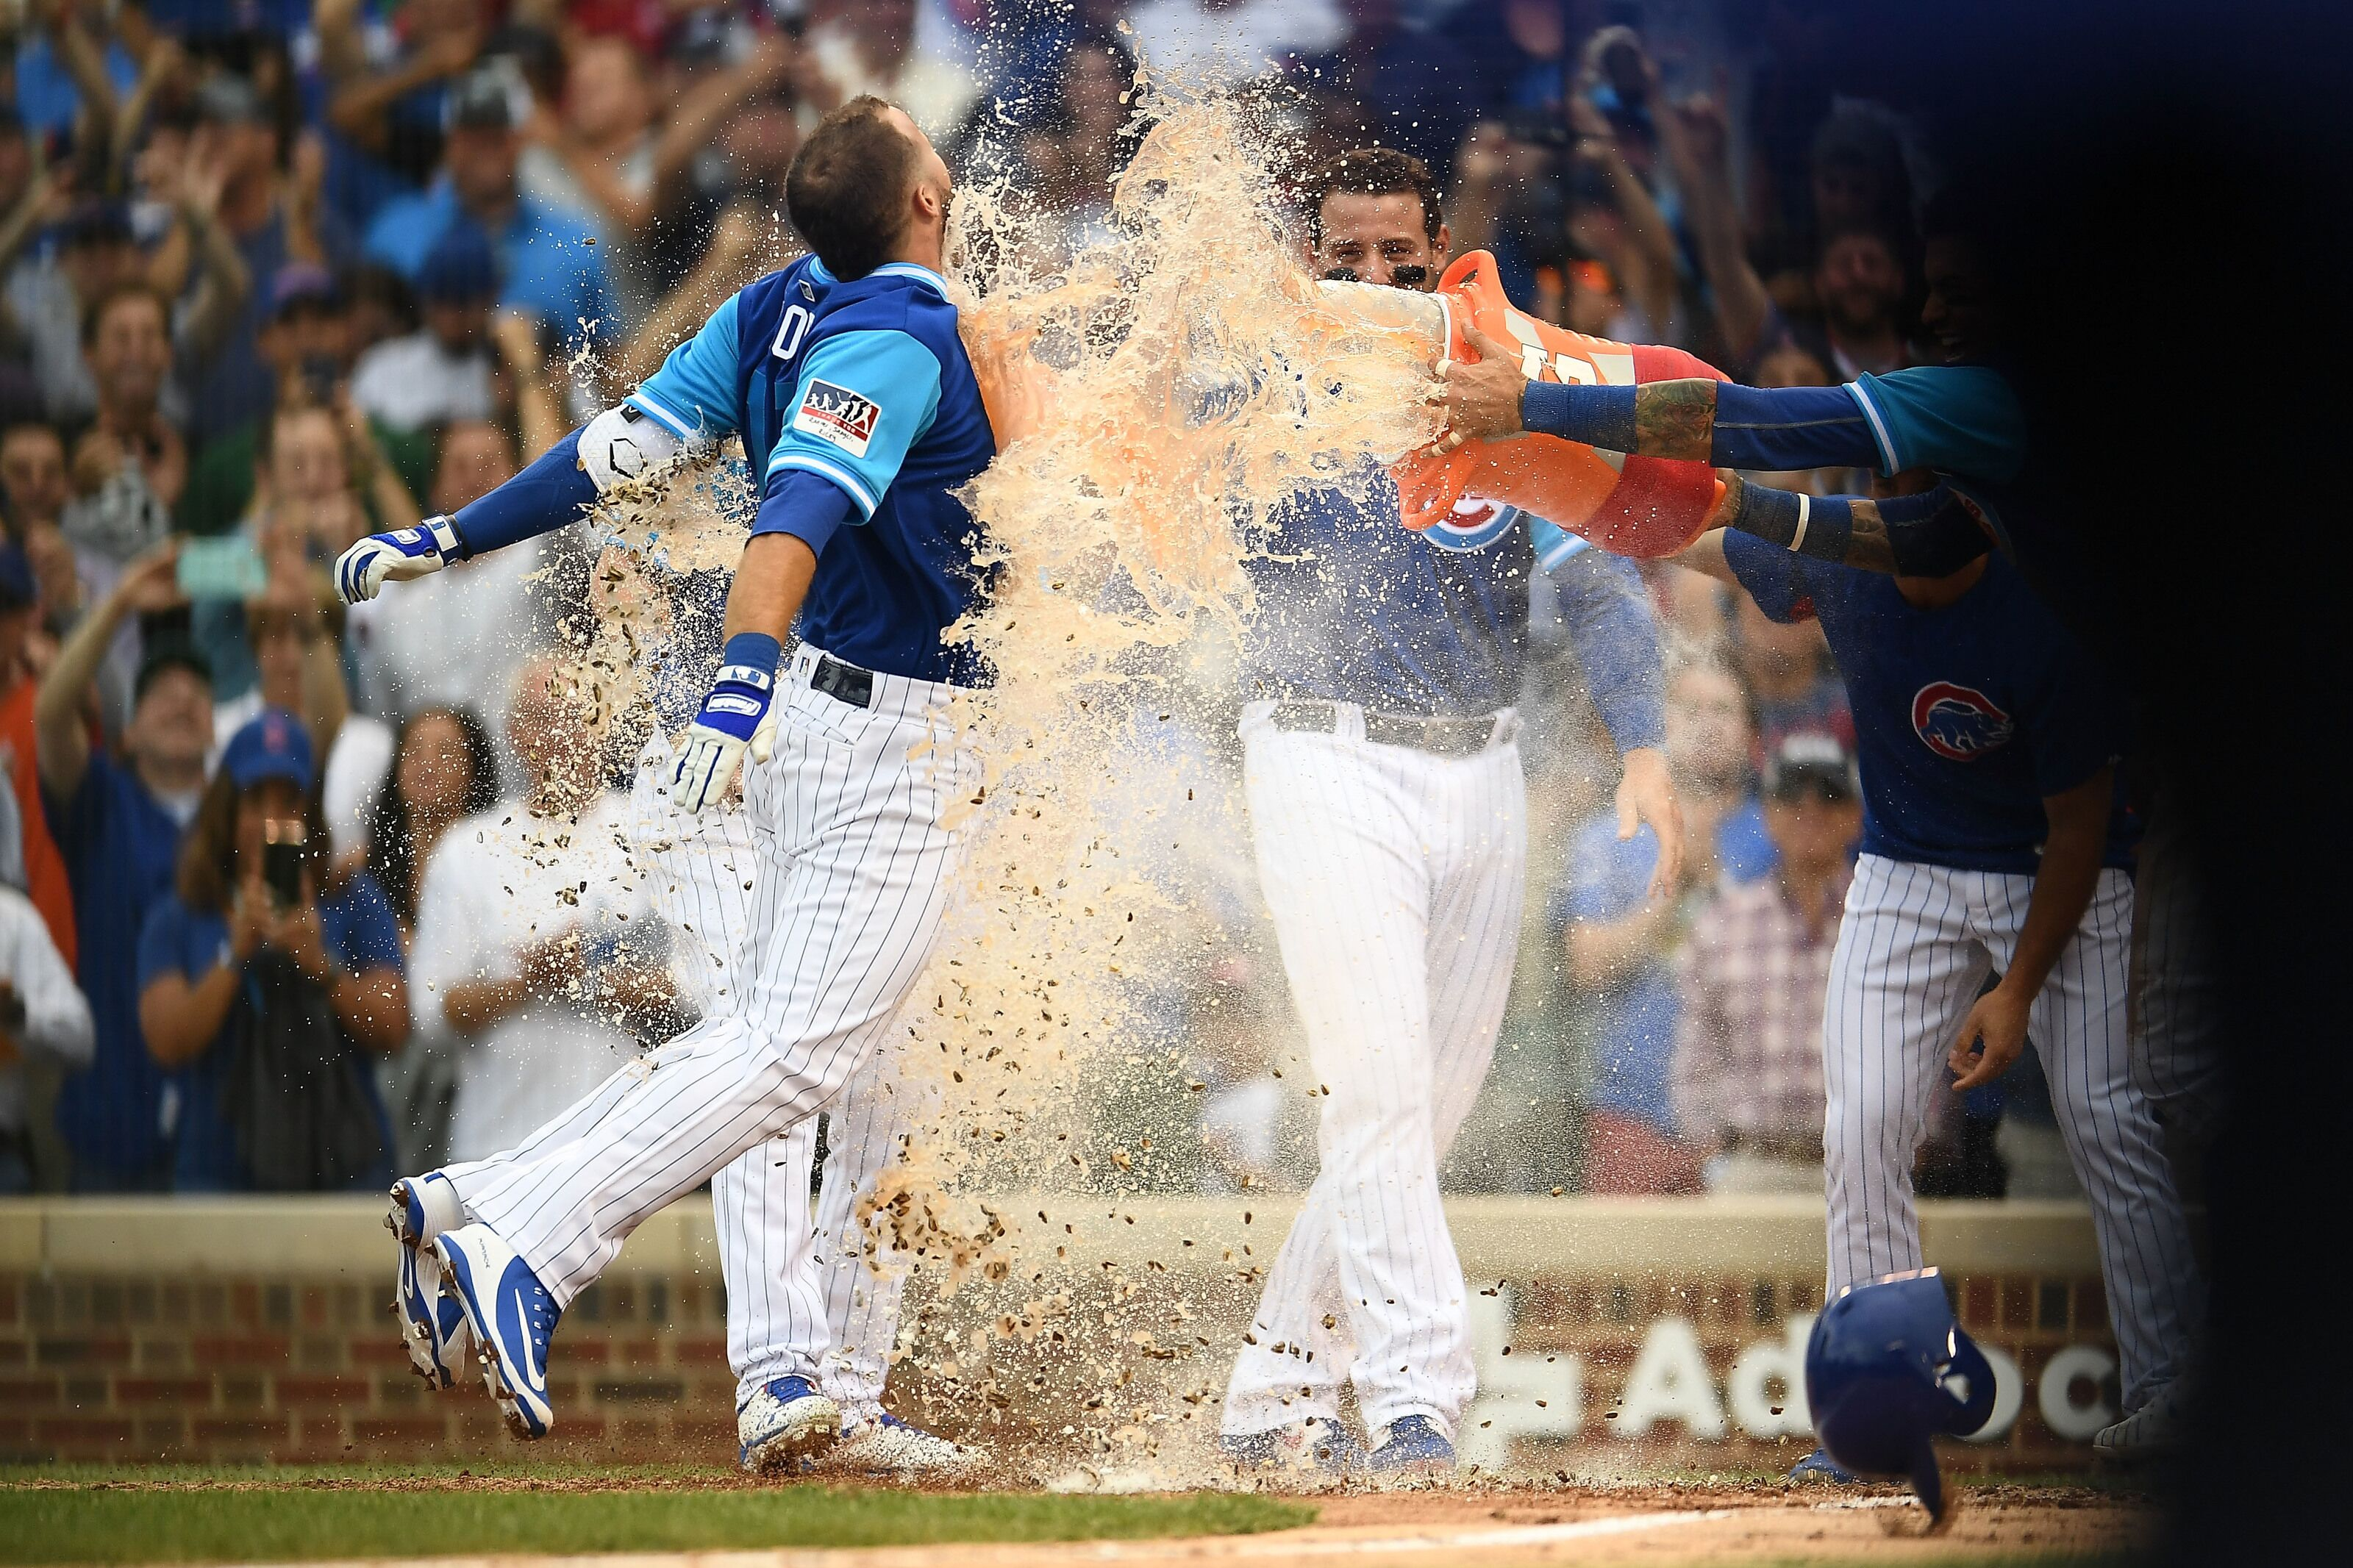 ccafe4e16b7 Chicago Cubs fall to 1-4 on young season  give David Bote an extension